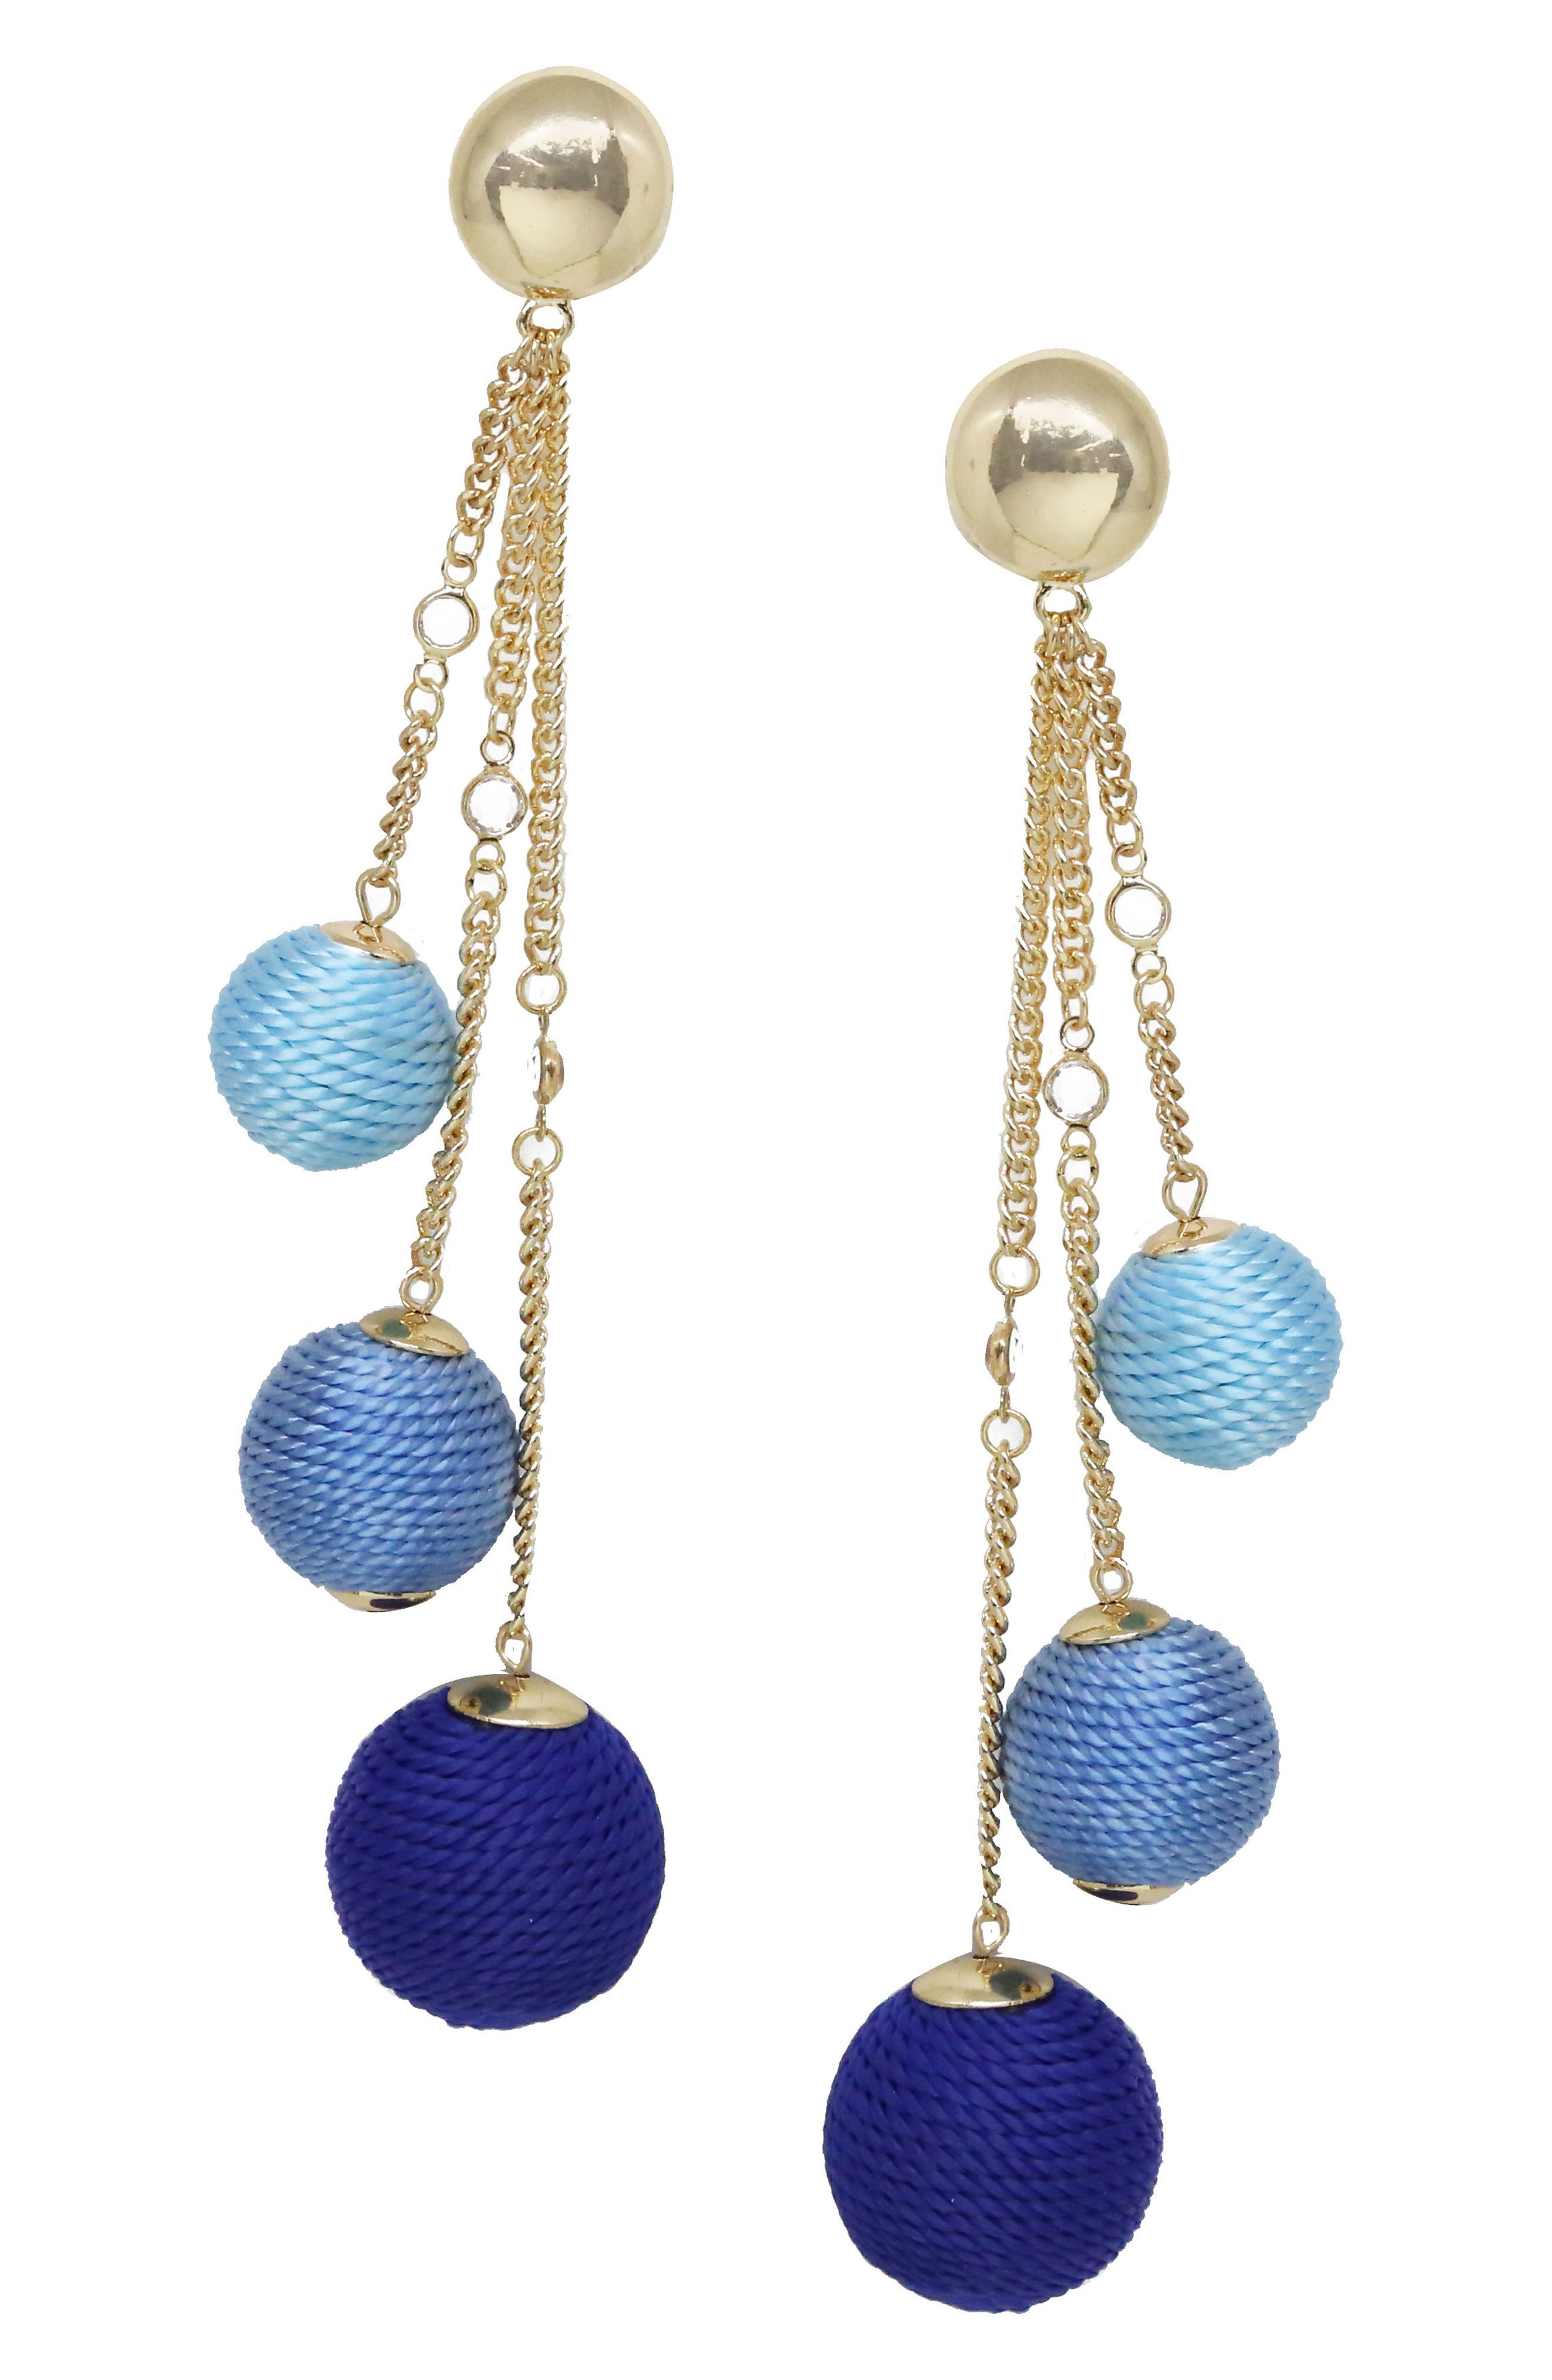 Wrapped Ball & Chain Statement Earrings,                             Main thumbnail 1, color,                             Blue